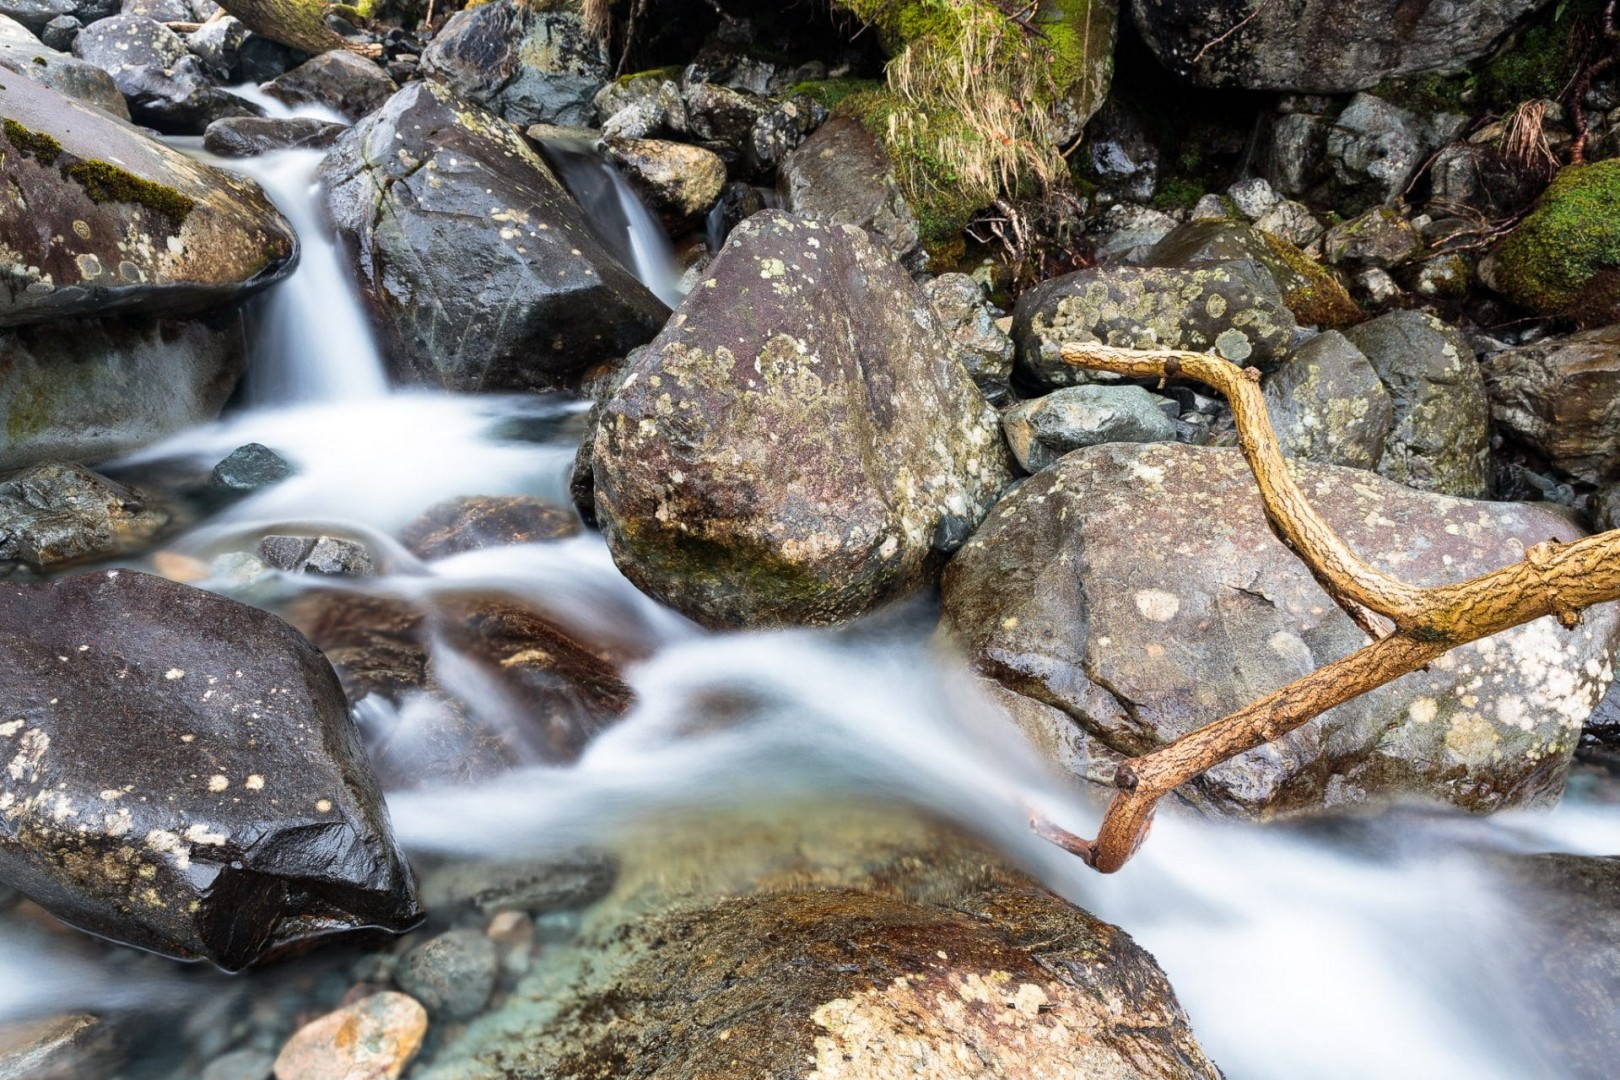 the-stream-scafell-rich-clark-images-1620x1080.jpg